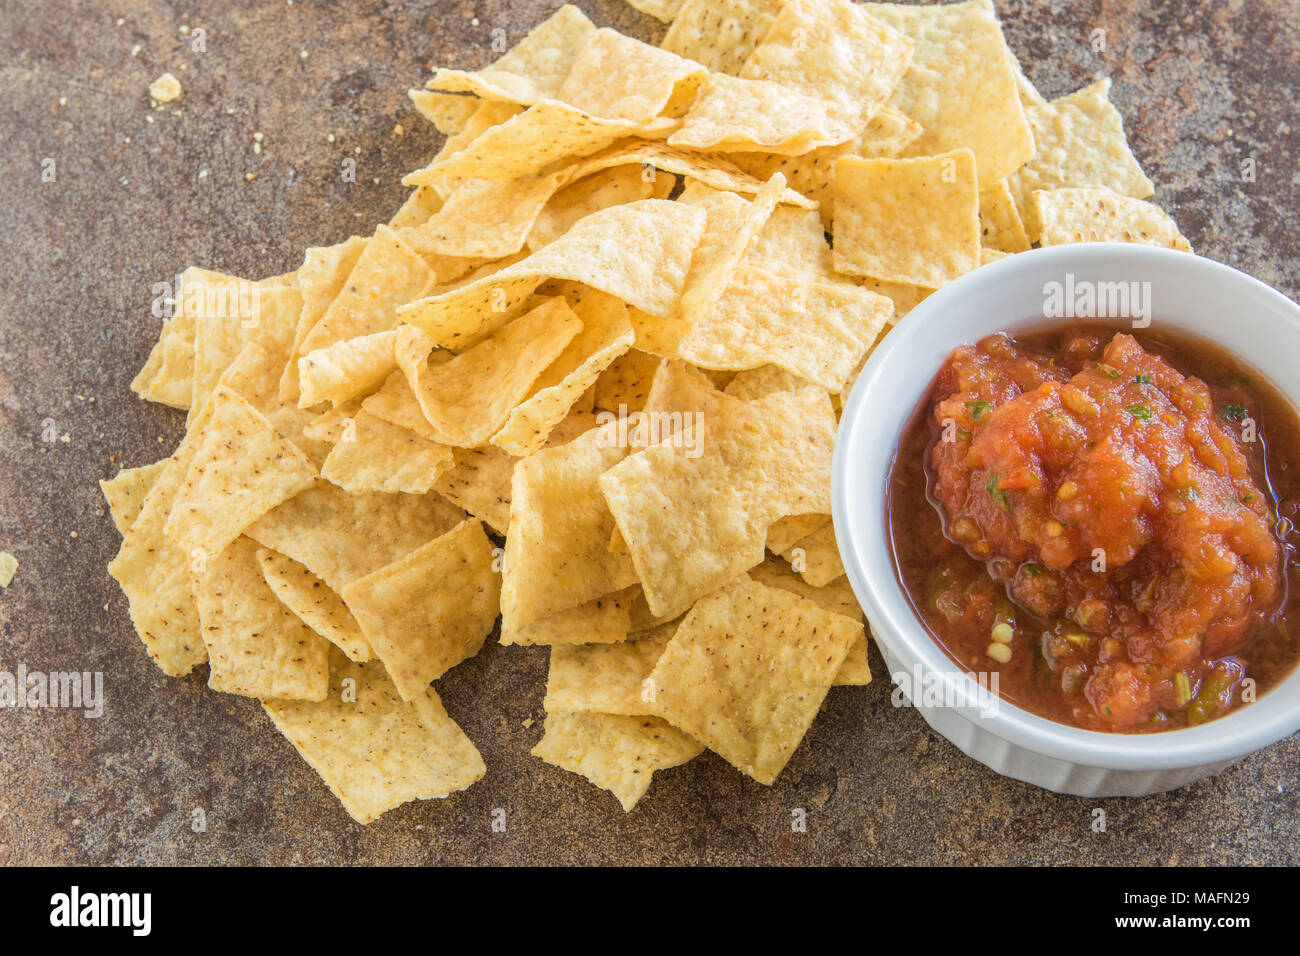 Food. fire roasted tomato salsa with tortilla chips from overhead - Stock Image